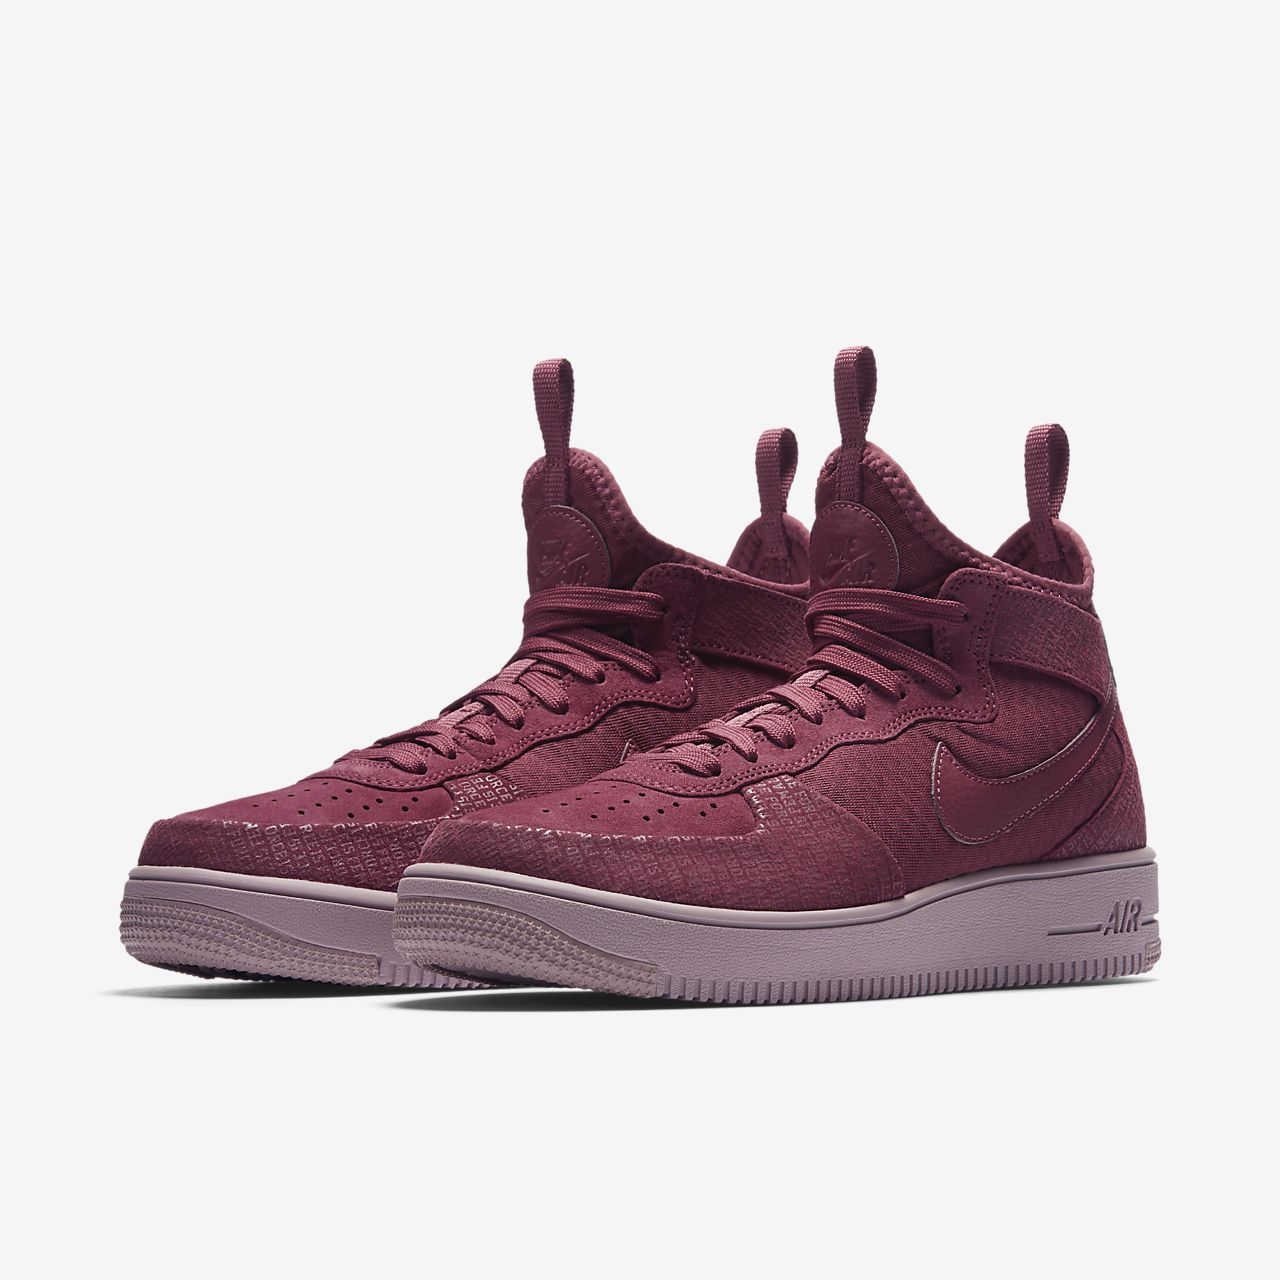 buy online 763b8 2a097 Nike Air Force 1 Ultraforce Mid Force is Female Womens Shoe ...